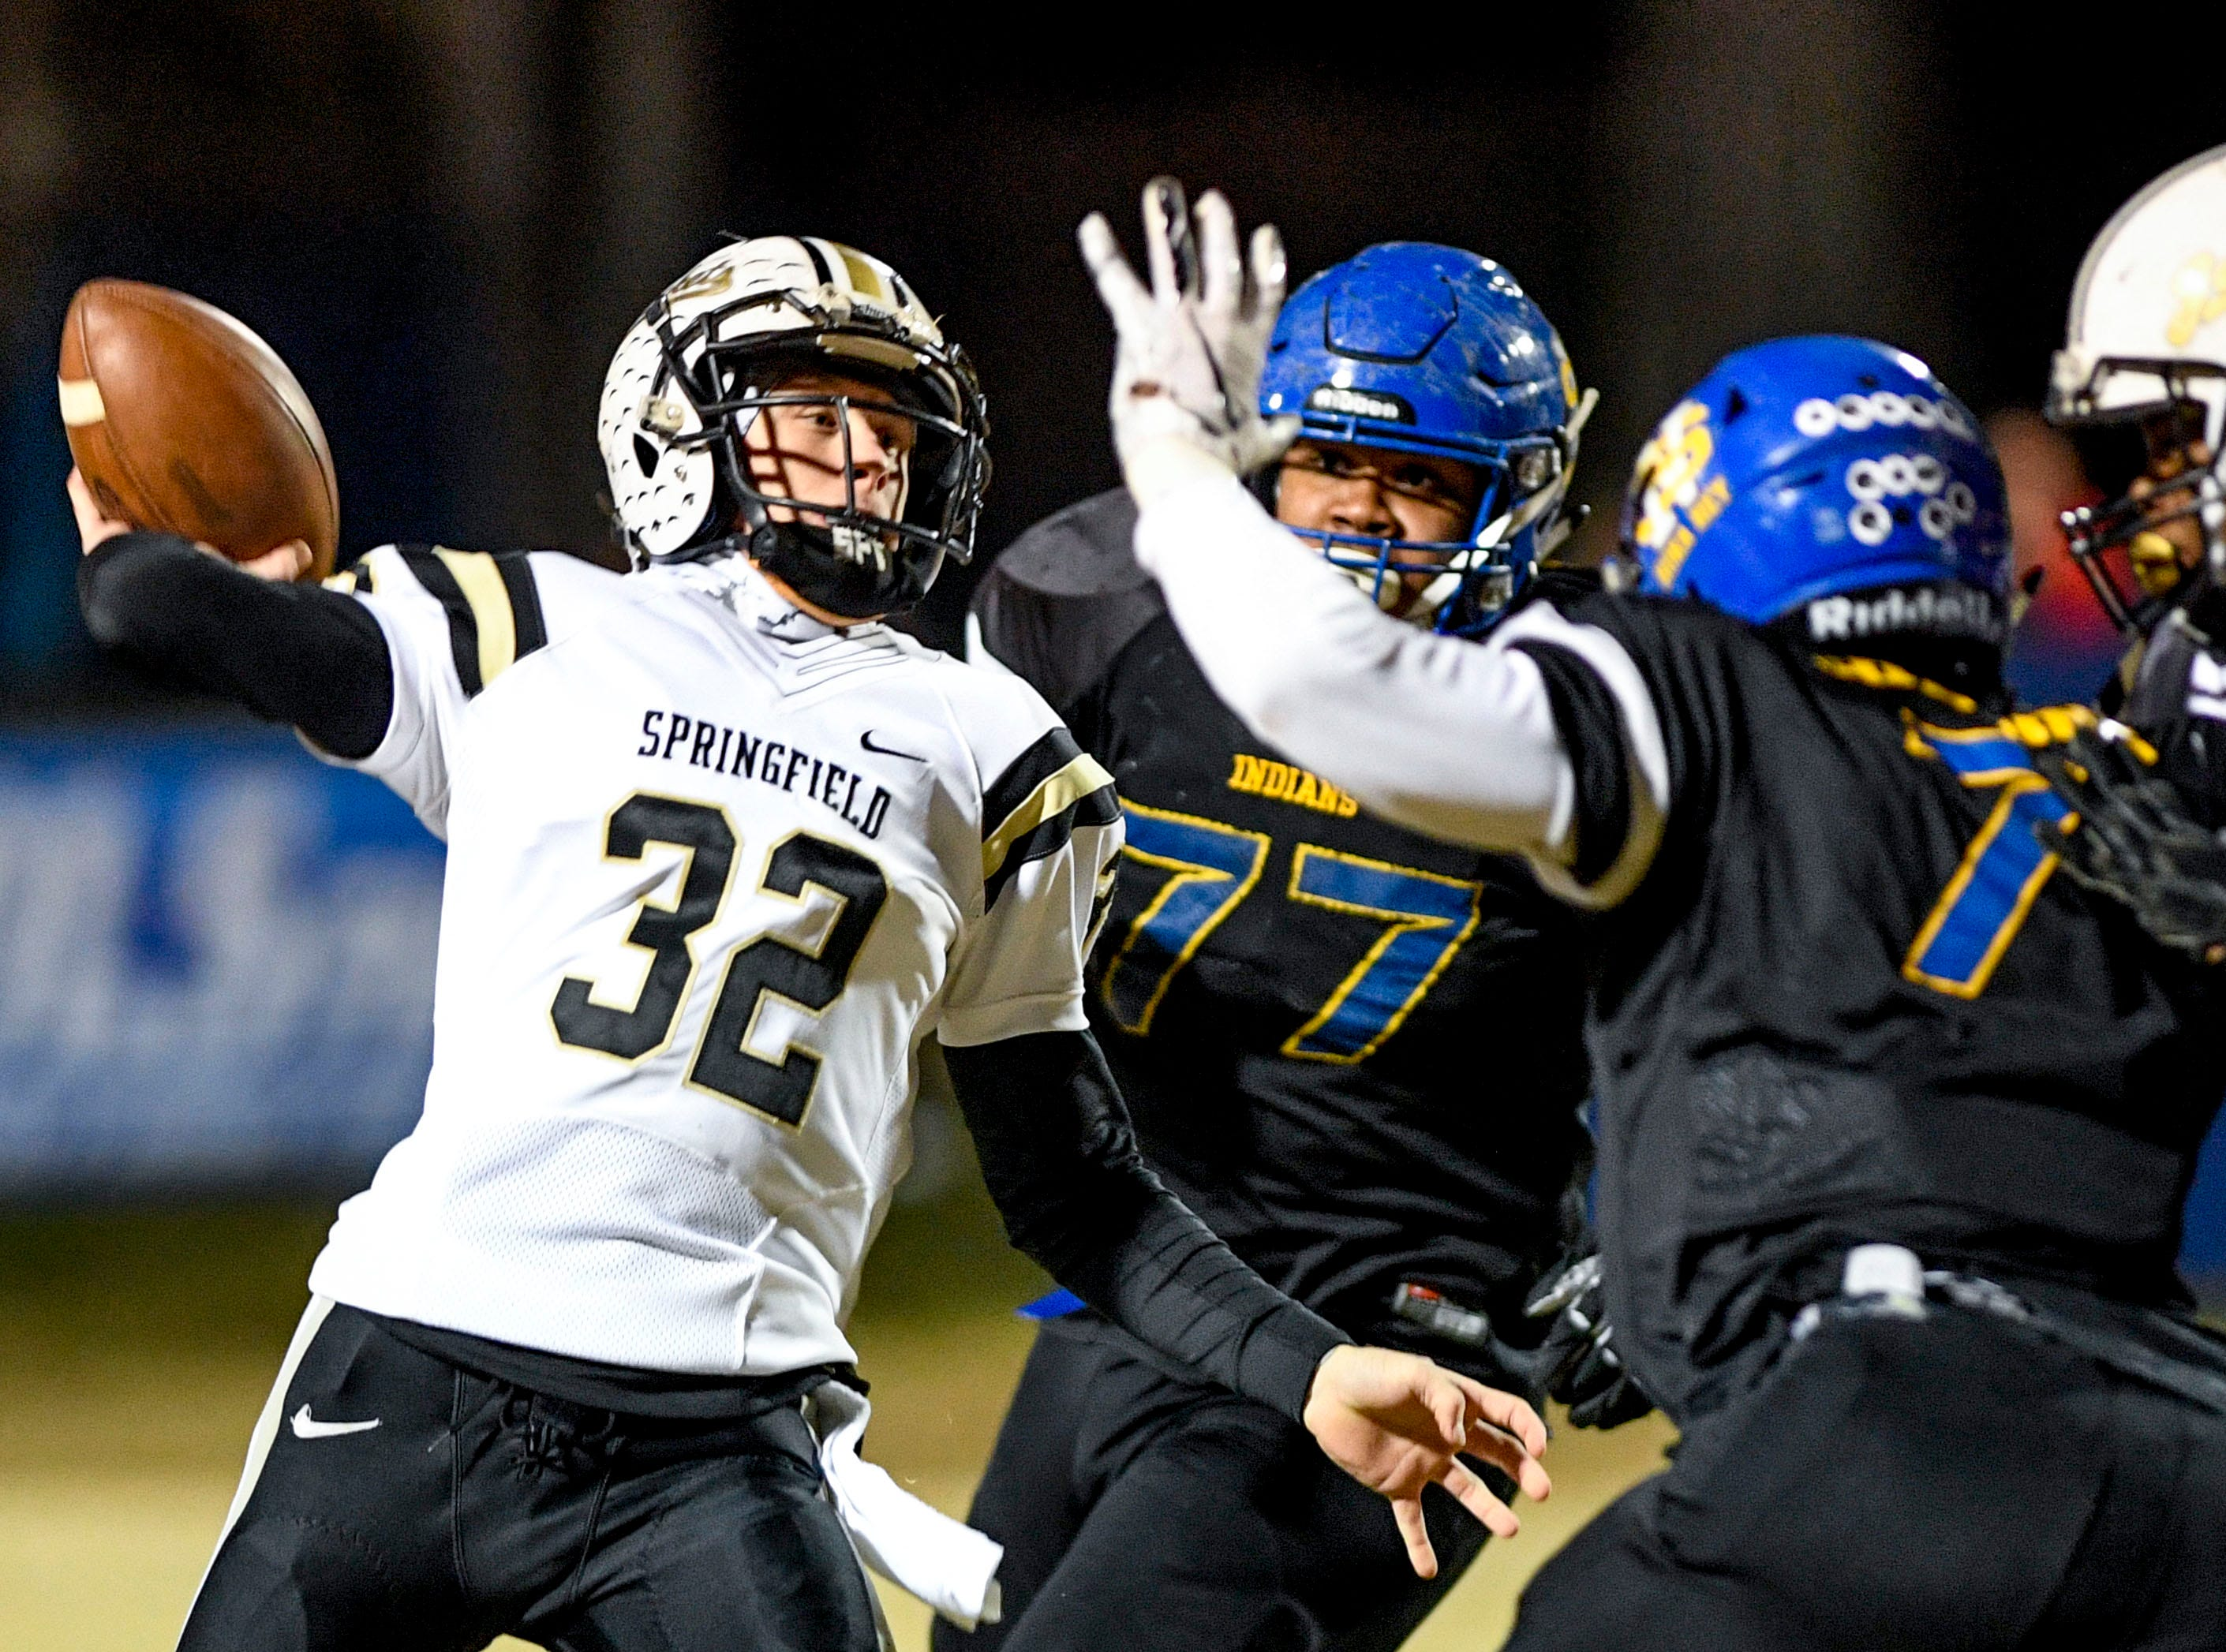 Springfield's Bryan Hayes (32) manages to let off a throw before being tackled by North Side's Steve Collins (7) and North Side's Jordan Williams (77) during a TSSAA playoff football game between Jackson North Side and Springfield High Schools at North Side High School in Jackson, Tenn., on Friday, Nov. 16, 2018.